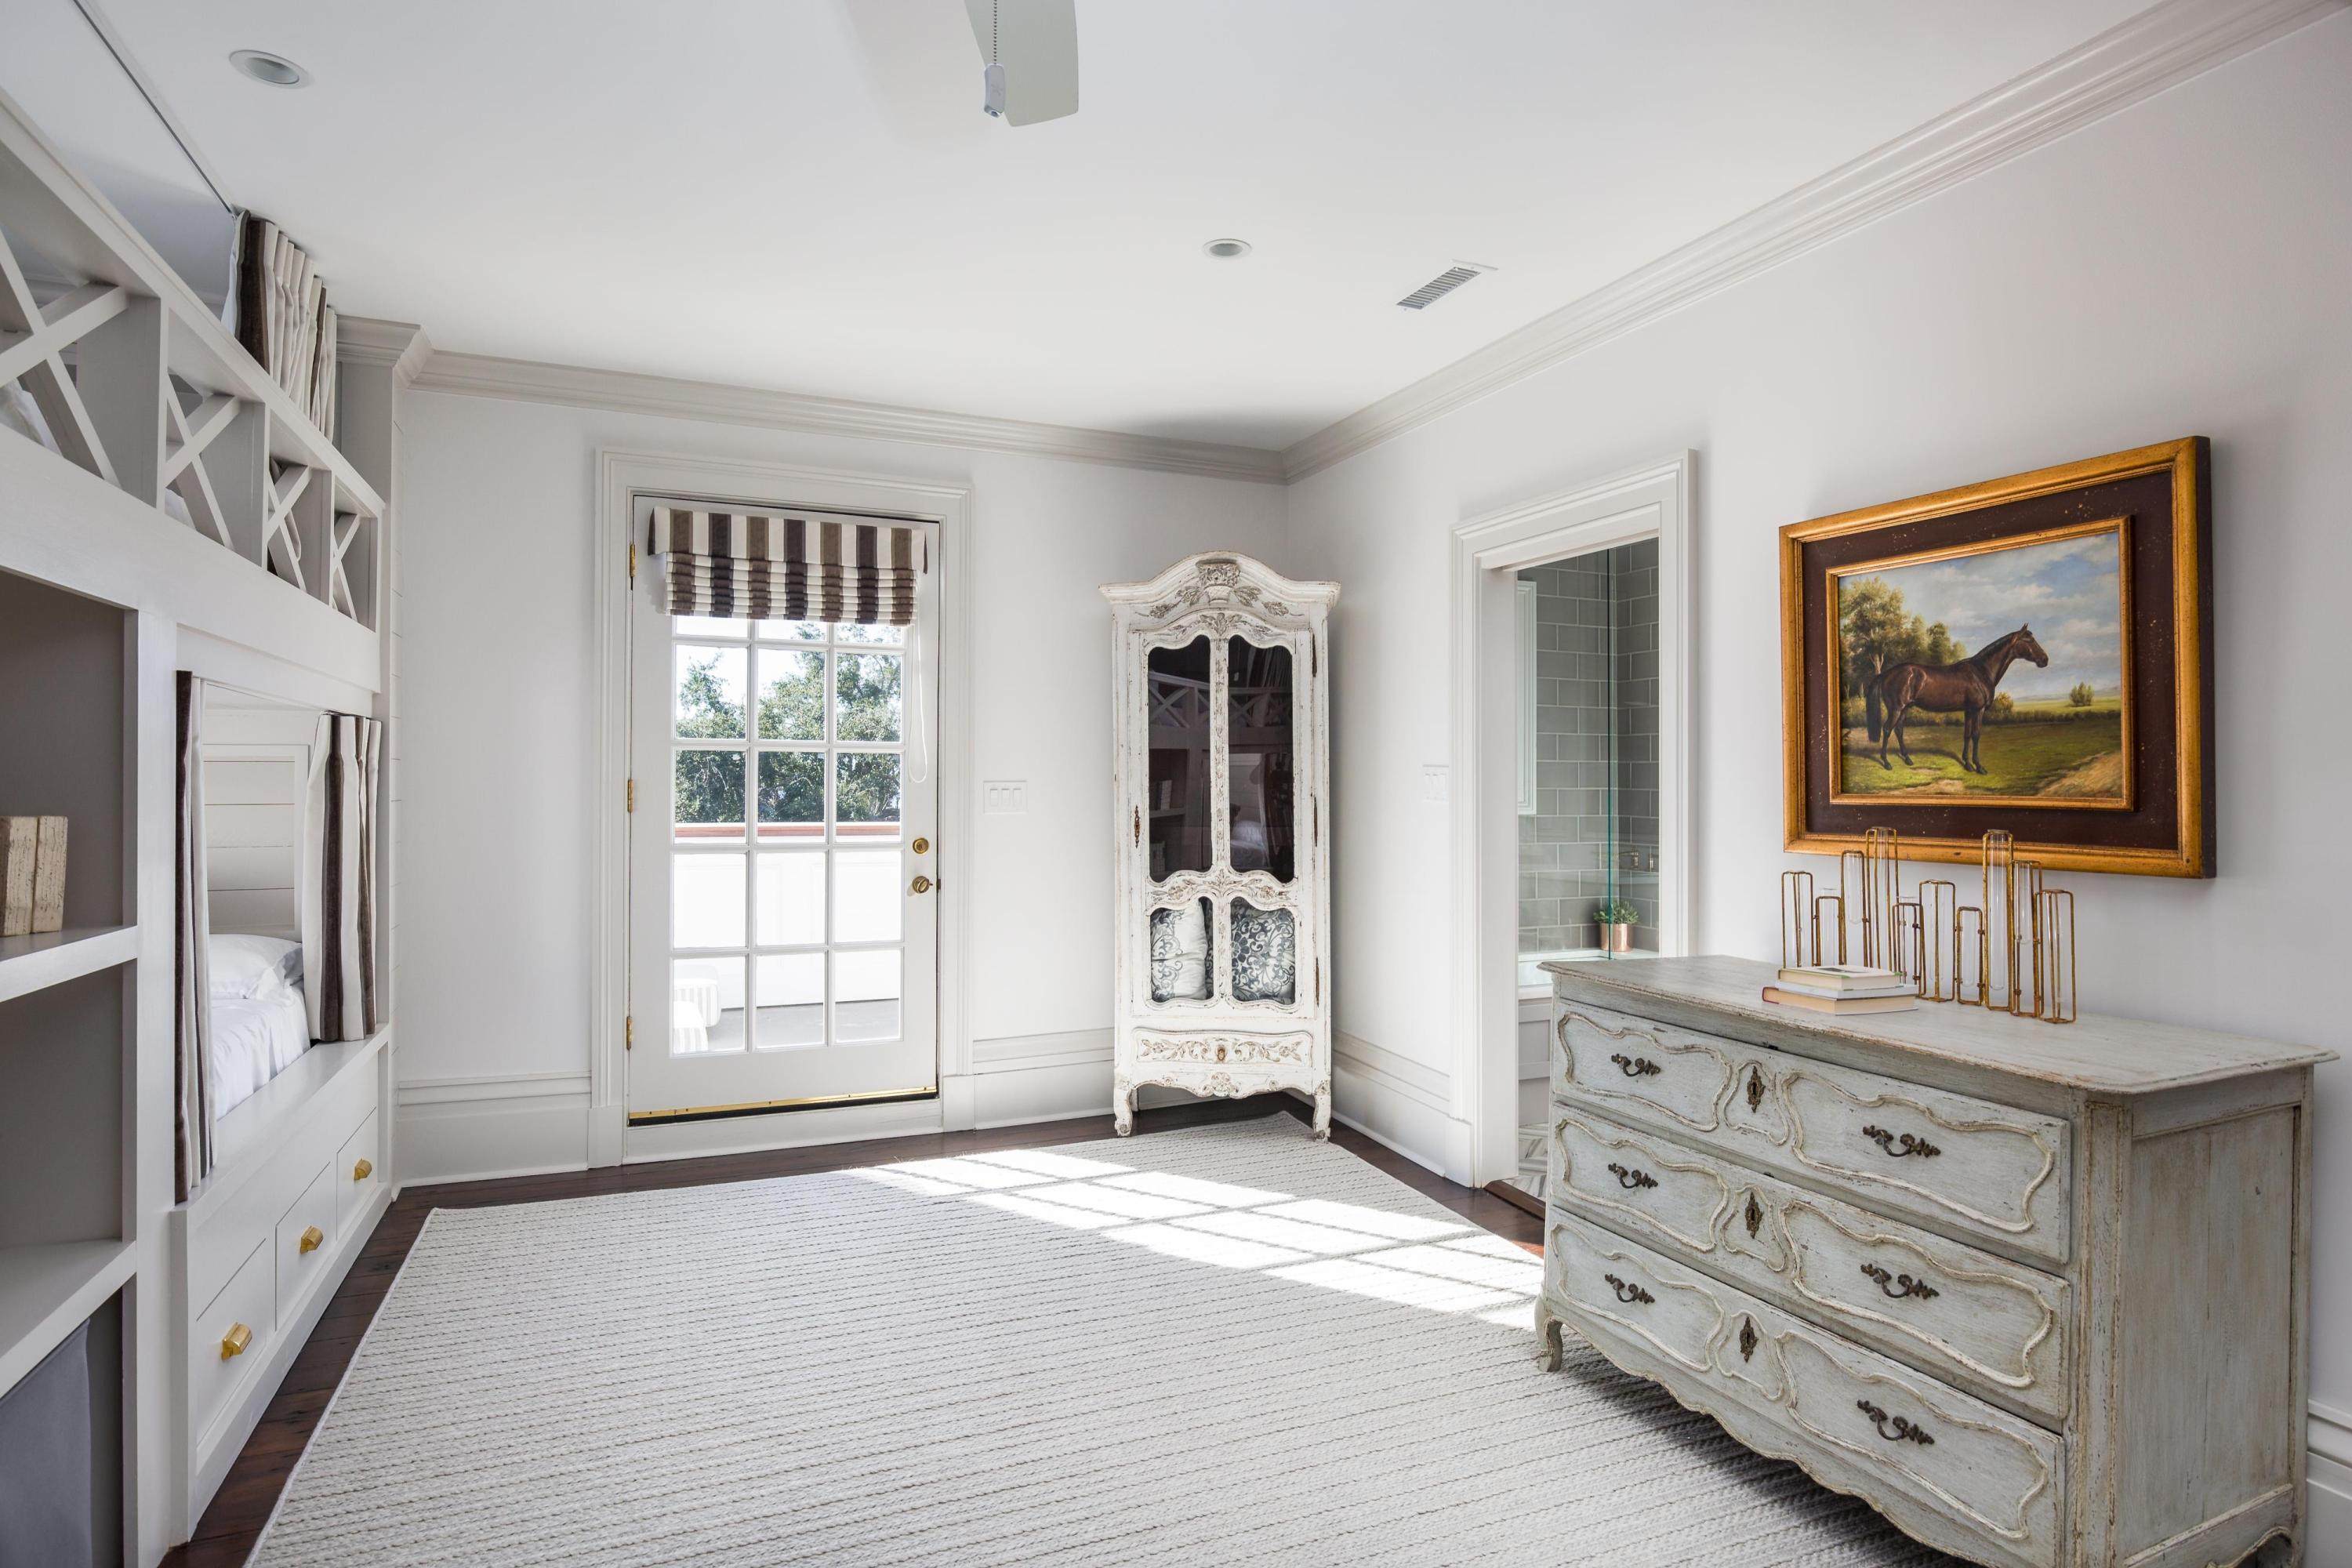 South of Broad Homes For Sale - 27 Lamboll, Charleston, SC - 45